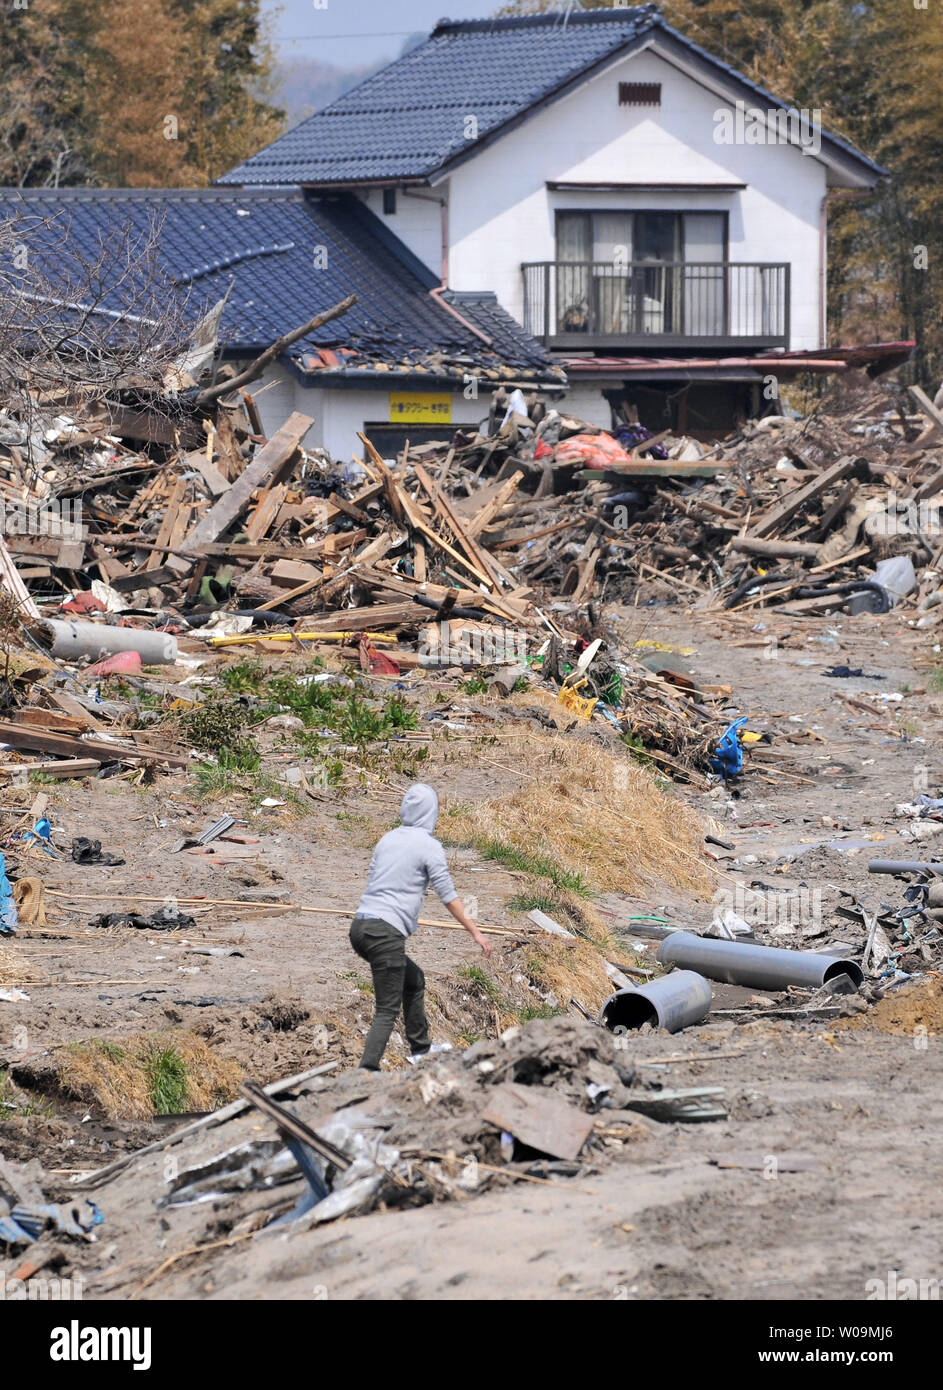 A woman walks through the destruction in Minamisoma, Fukushima prefecture, Japan, on April 15, 2011. A massive earthquake and ensuing tsunami destroyed homes, killed thousands and caused a nuclear disaster.    UPI/Keizo Mori - Stock Image